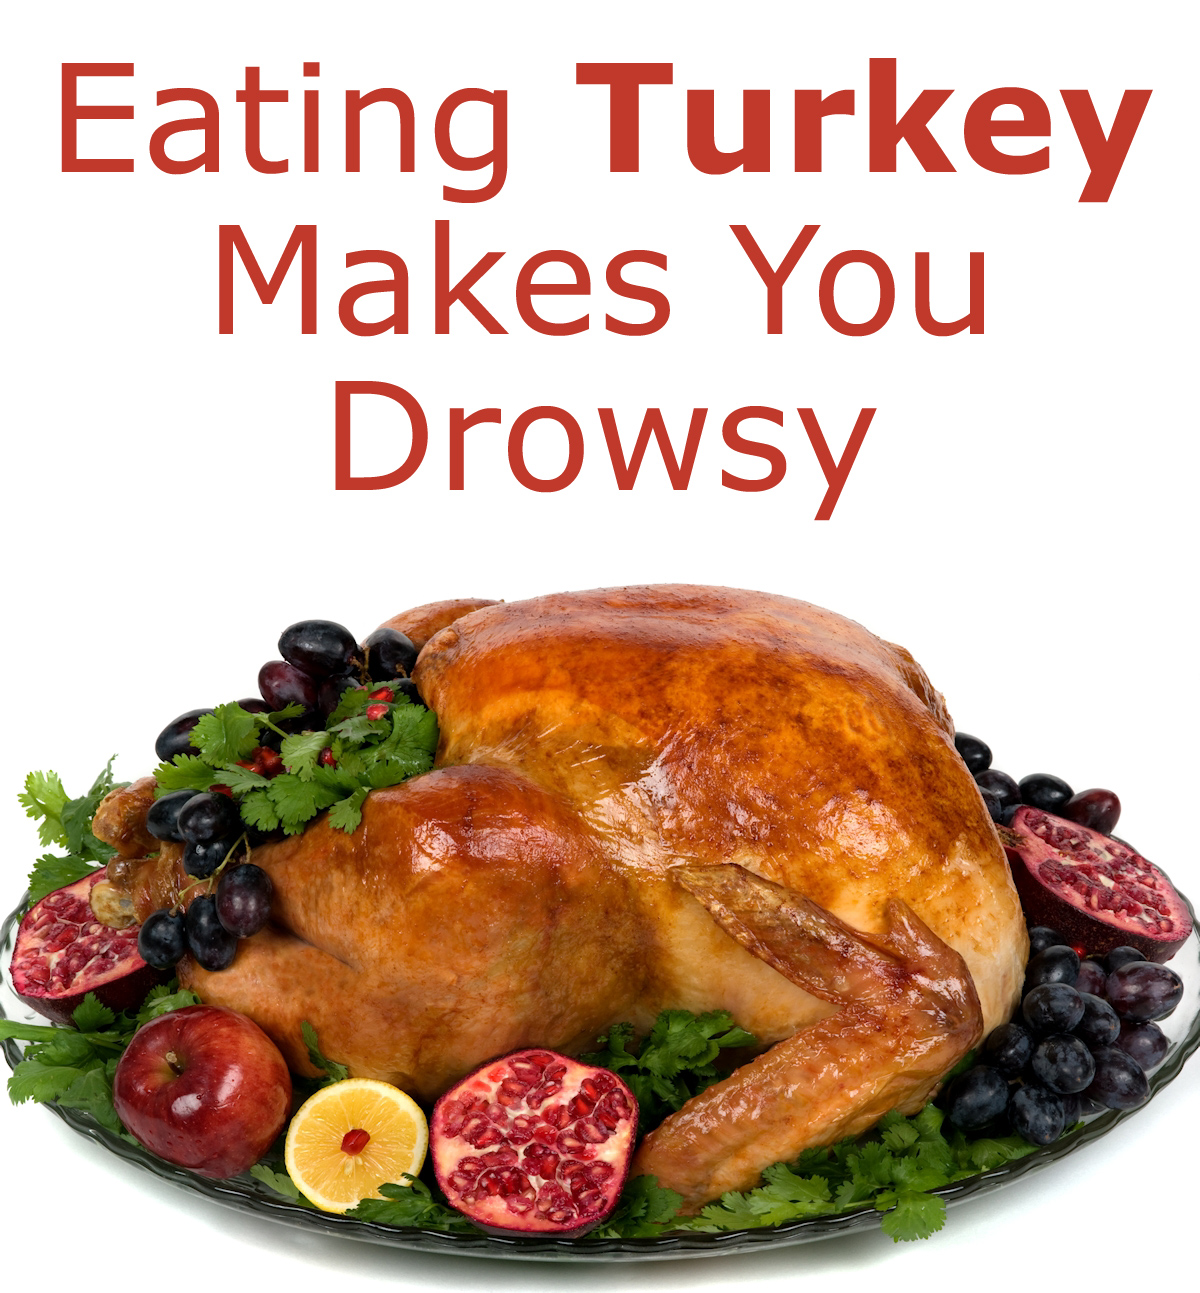 Eating Turkey Makes You Drowsy